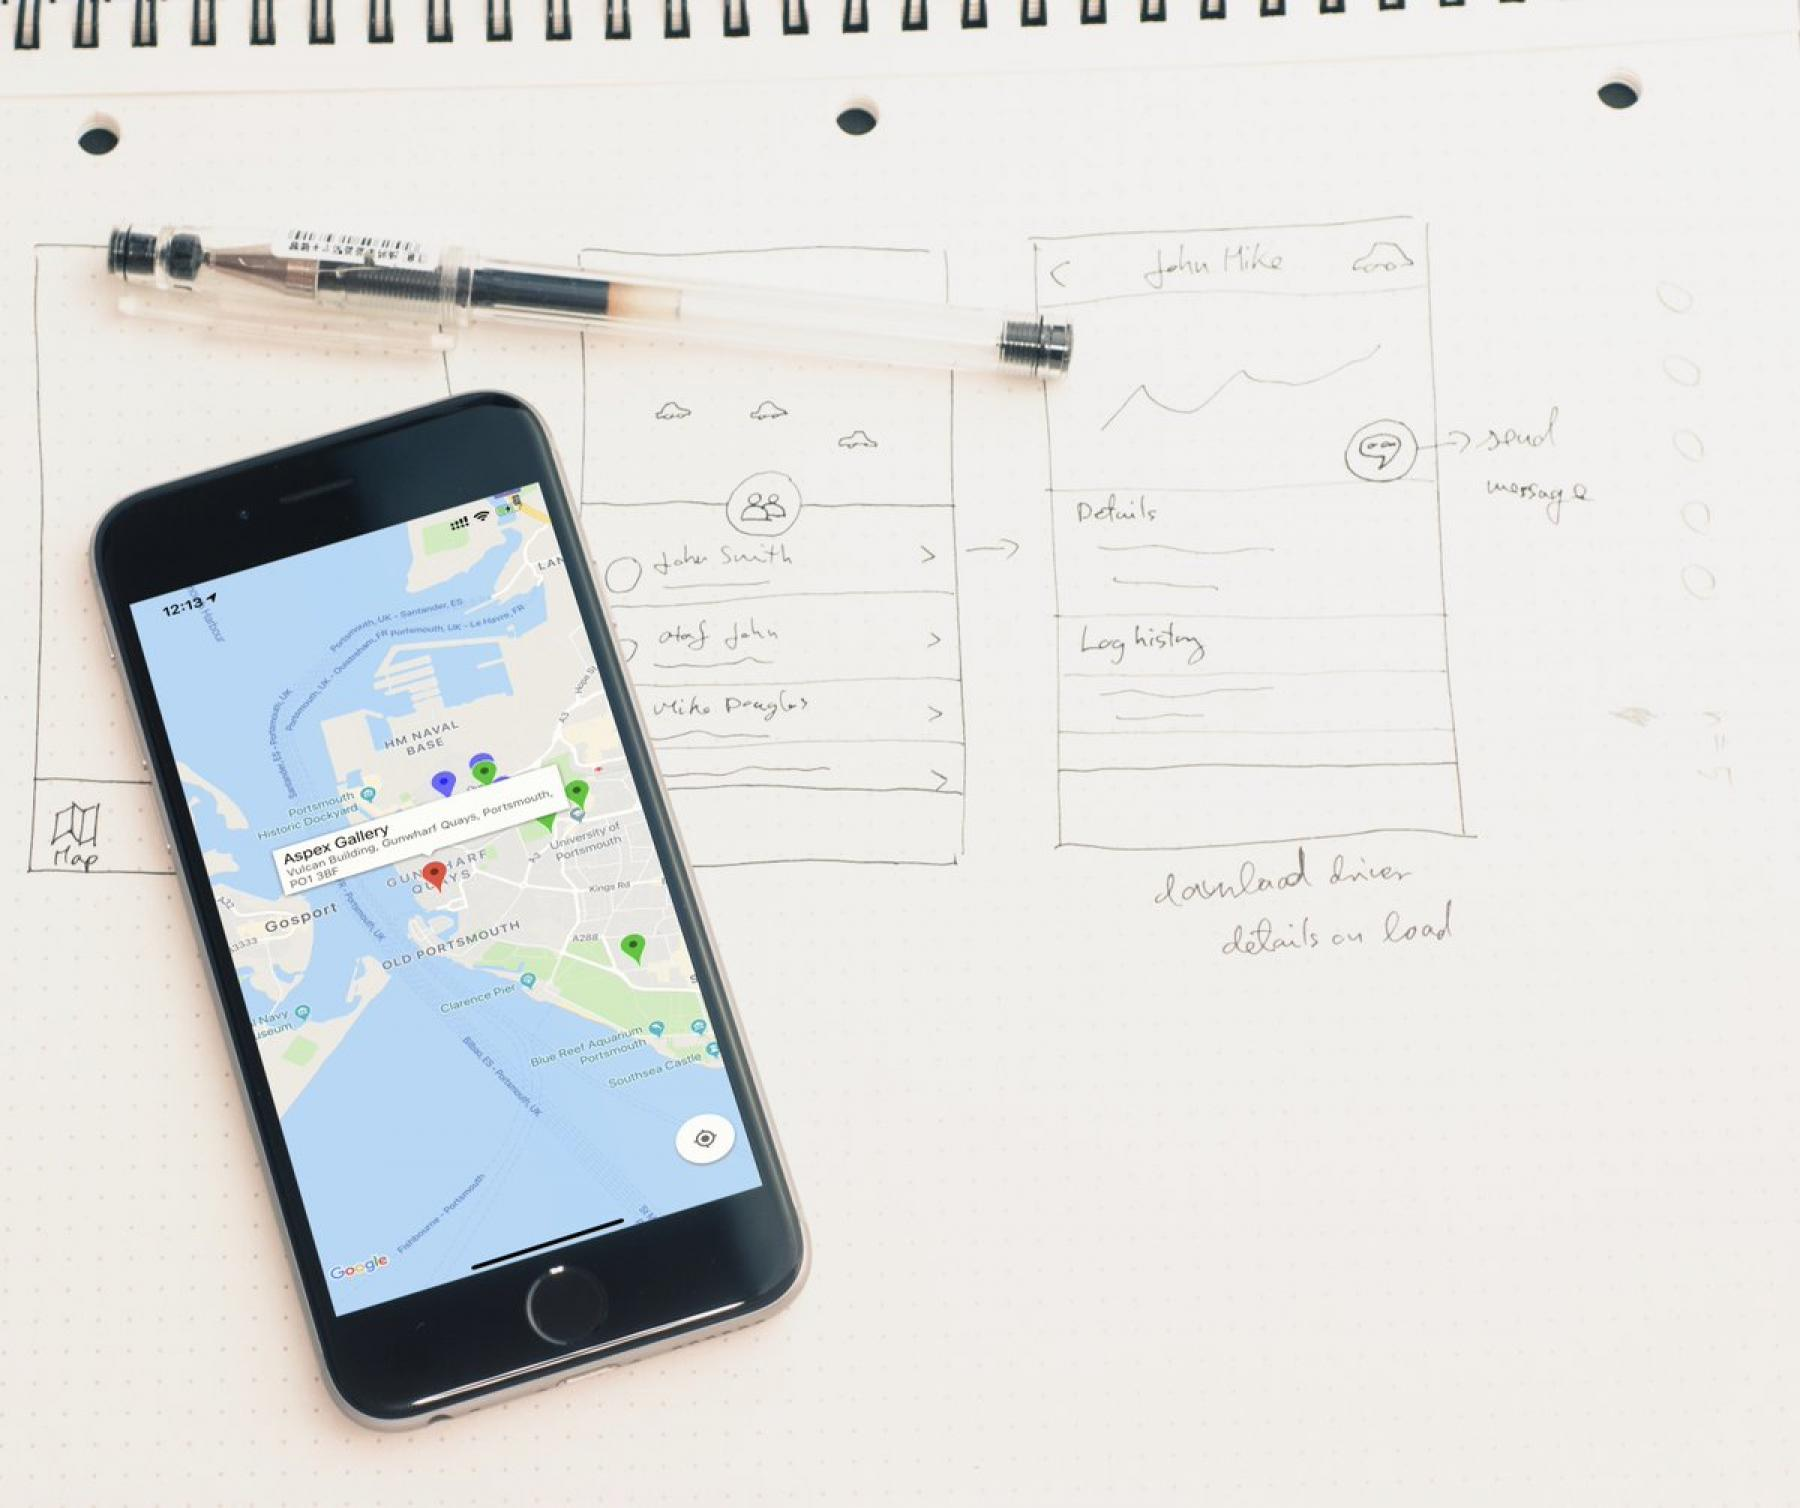 The PONToon mapping app, created by App Developer TinRaven